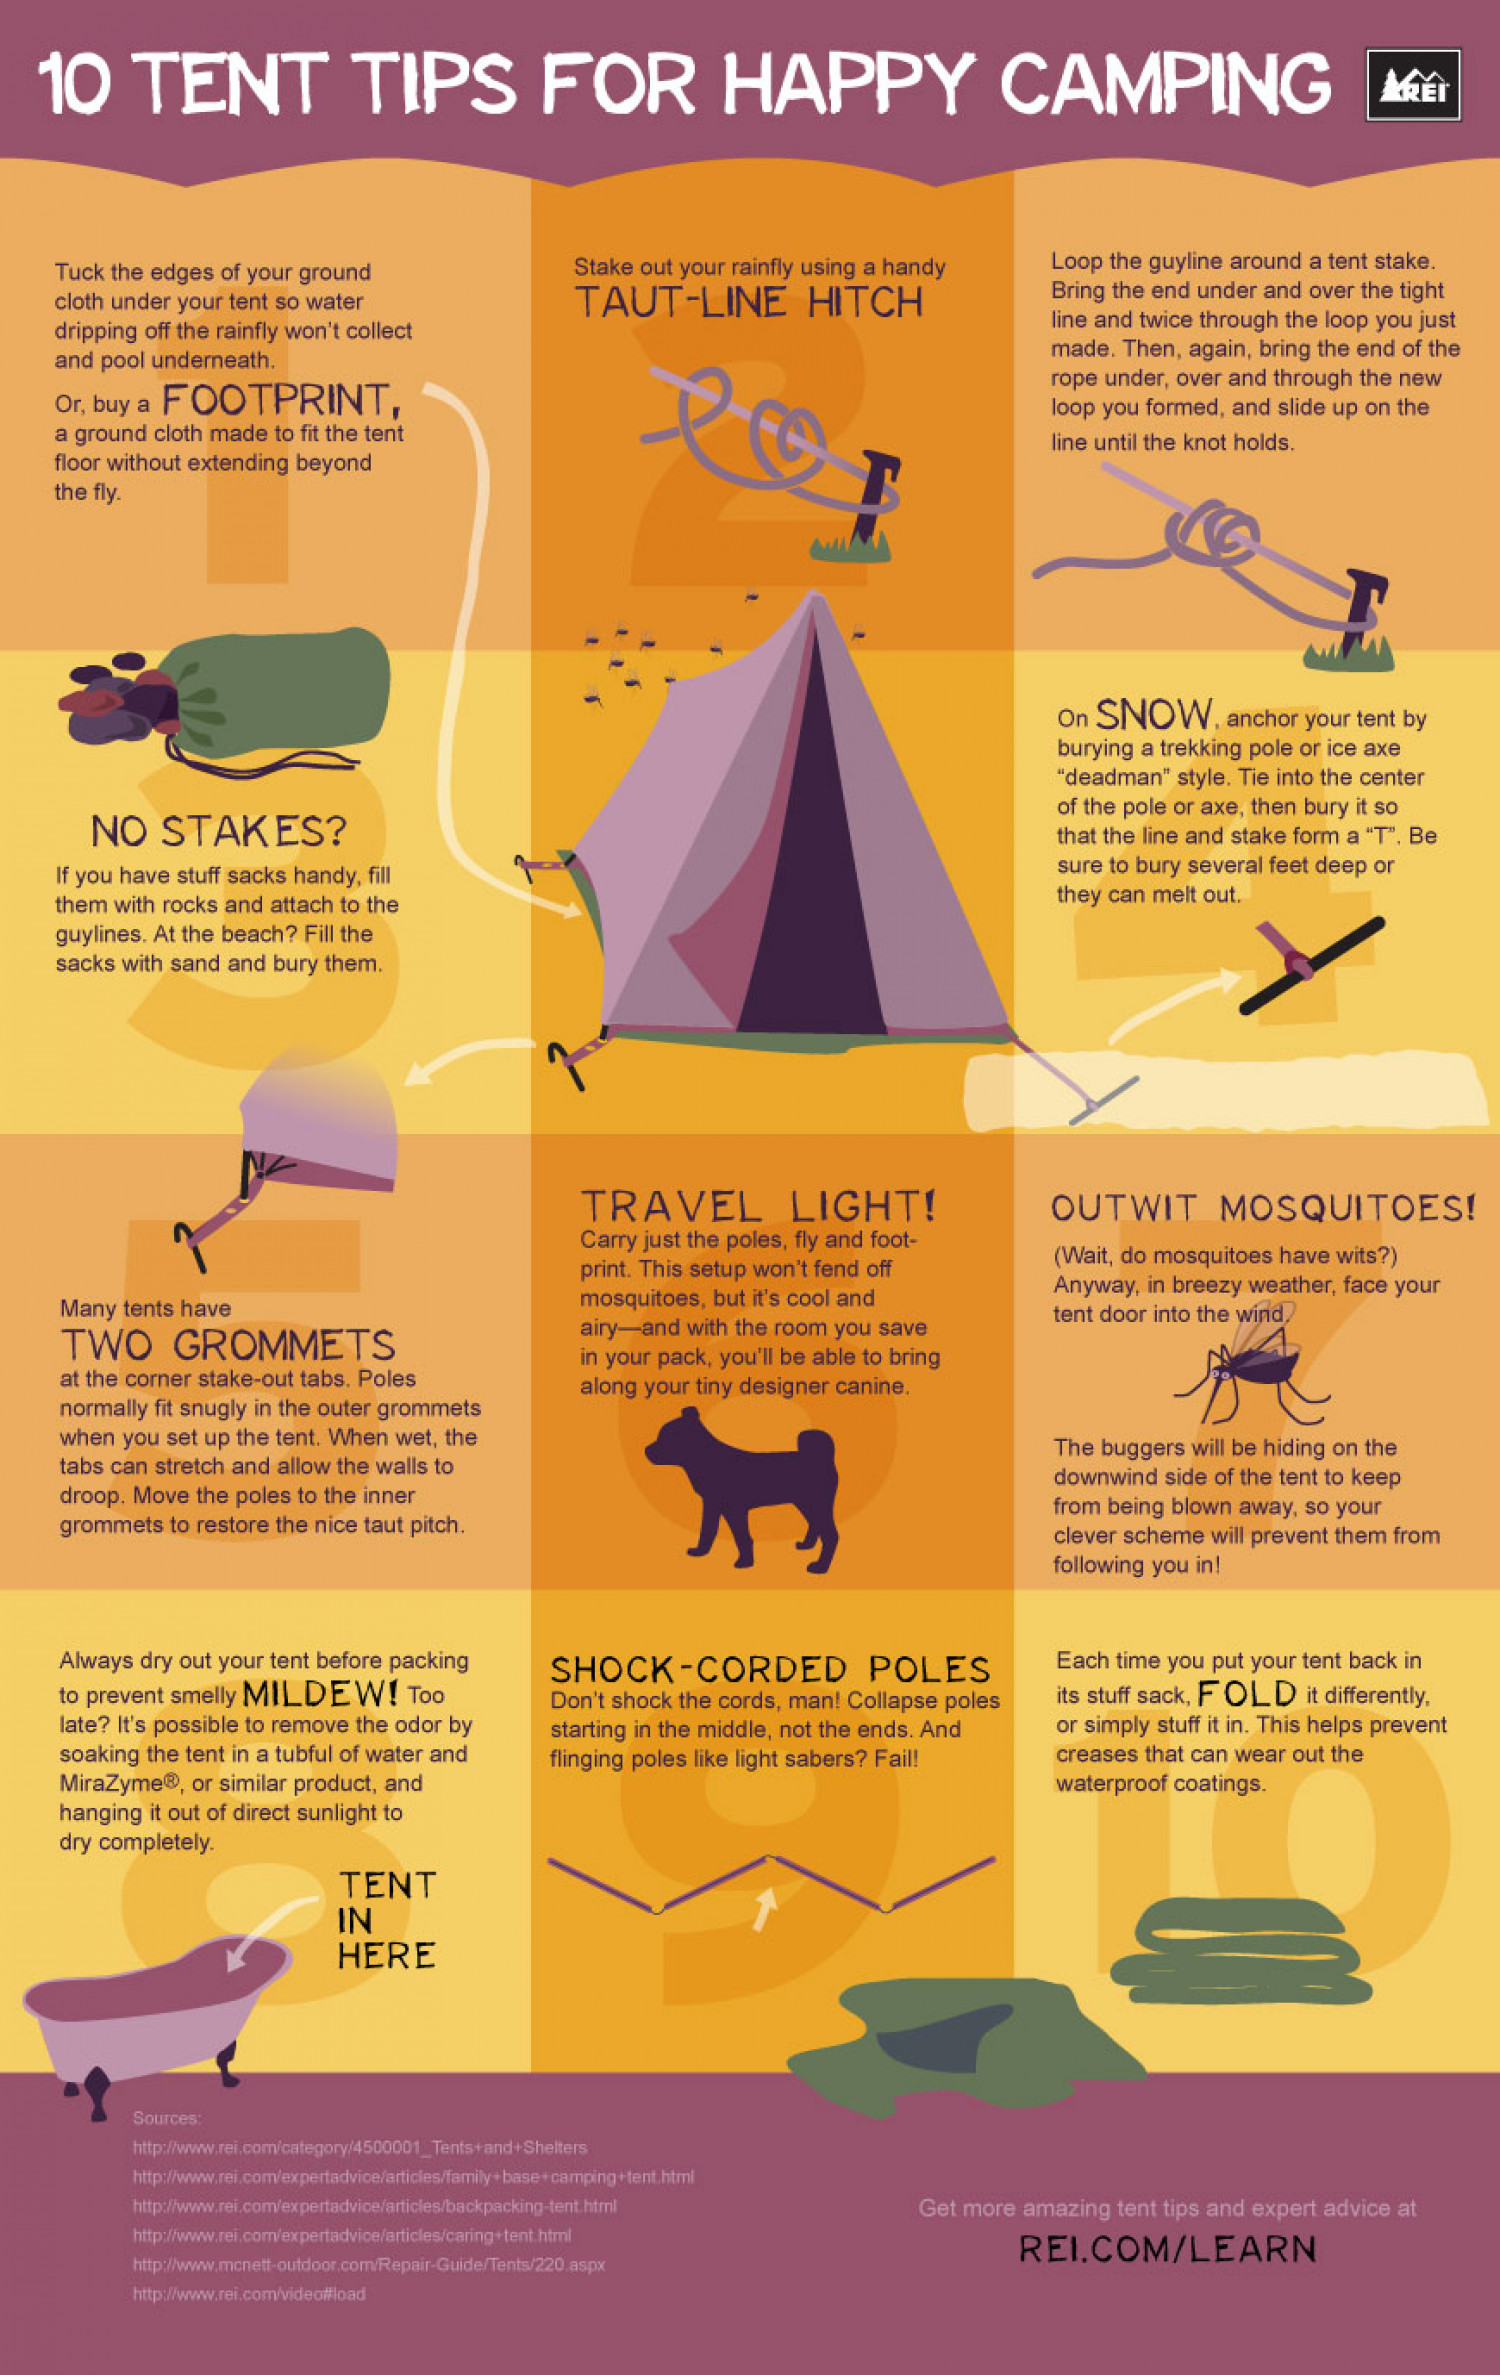 Top 10 Tent Tips for Happy C&ing Infographic  sc 1 st  Visually & Top 10 Tent Tips for Happy Camping | Visual.ly